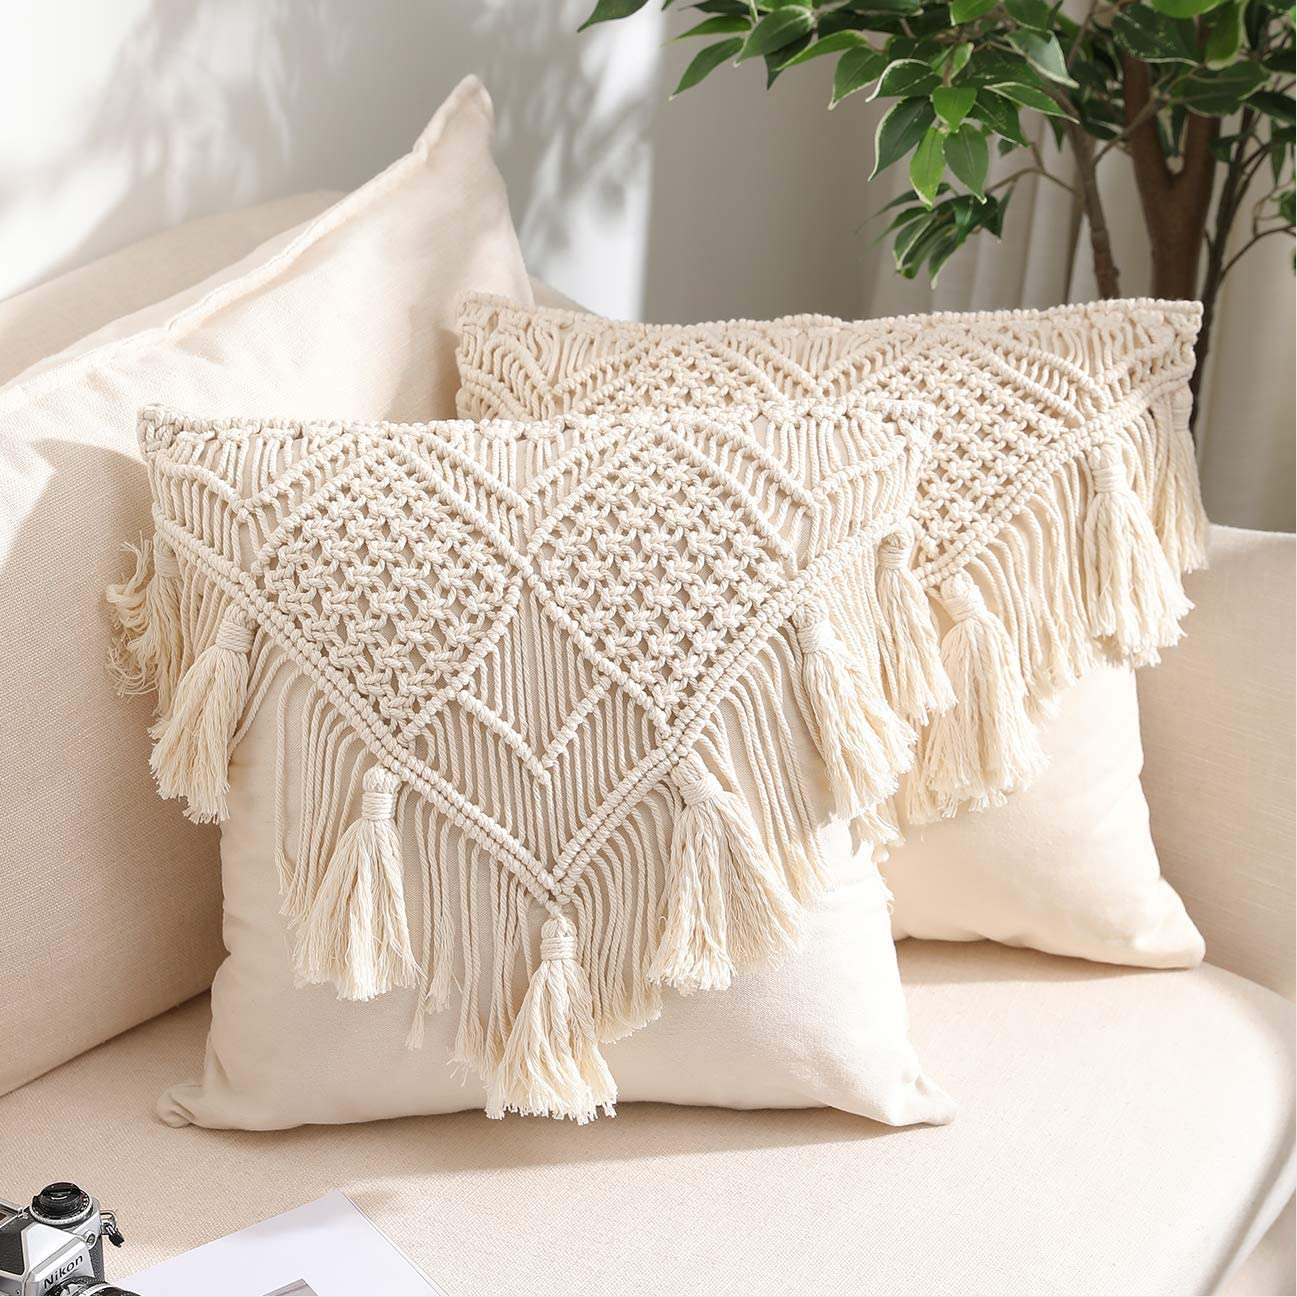 Amazon Com Throw Pillow Covers Macrame Cushion Case Woven Boho Cushion Cover For Bed Sofa Couch Bench Car Home Decor Comfy Square Pillow Cases With Tassels Set Of 2 Decorative Pillowcase 17x17 Inch